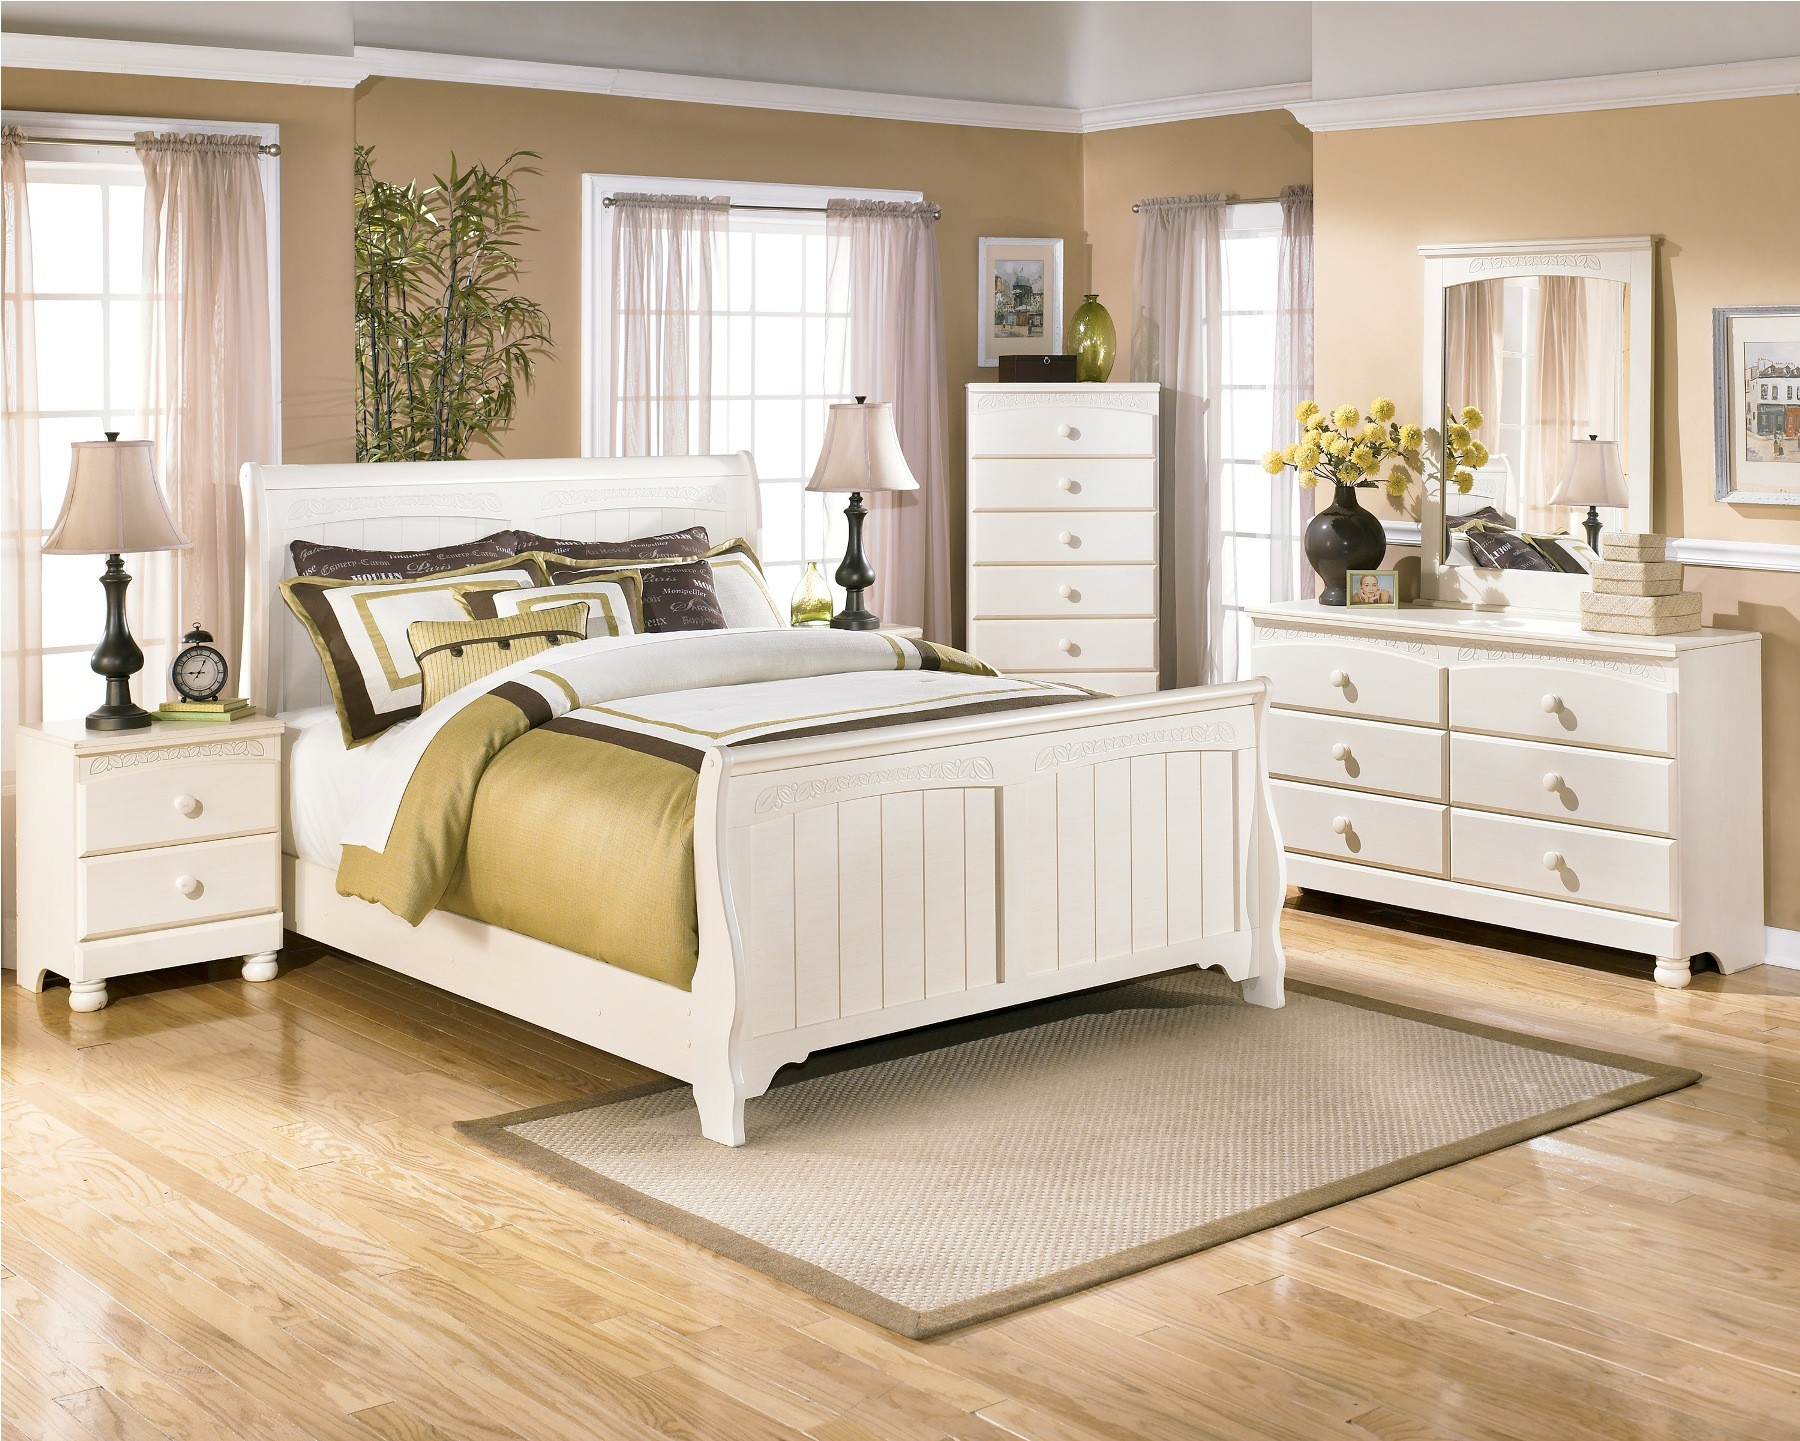 Cottage retreat dresser from ashley b213 21 coleman for Cottage retreat ii